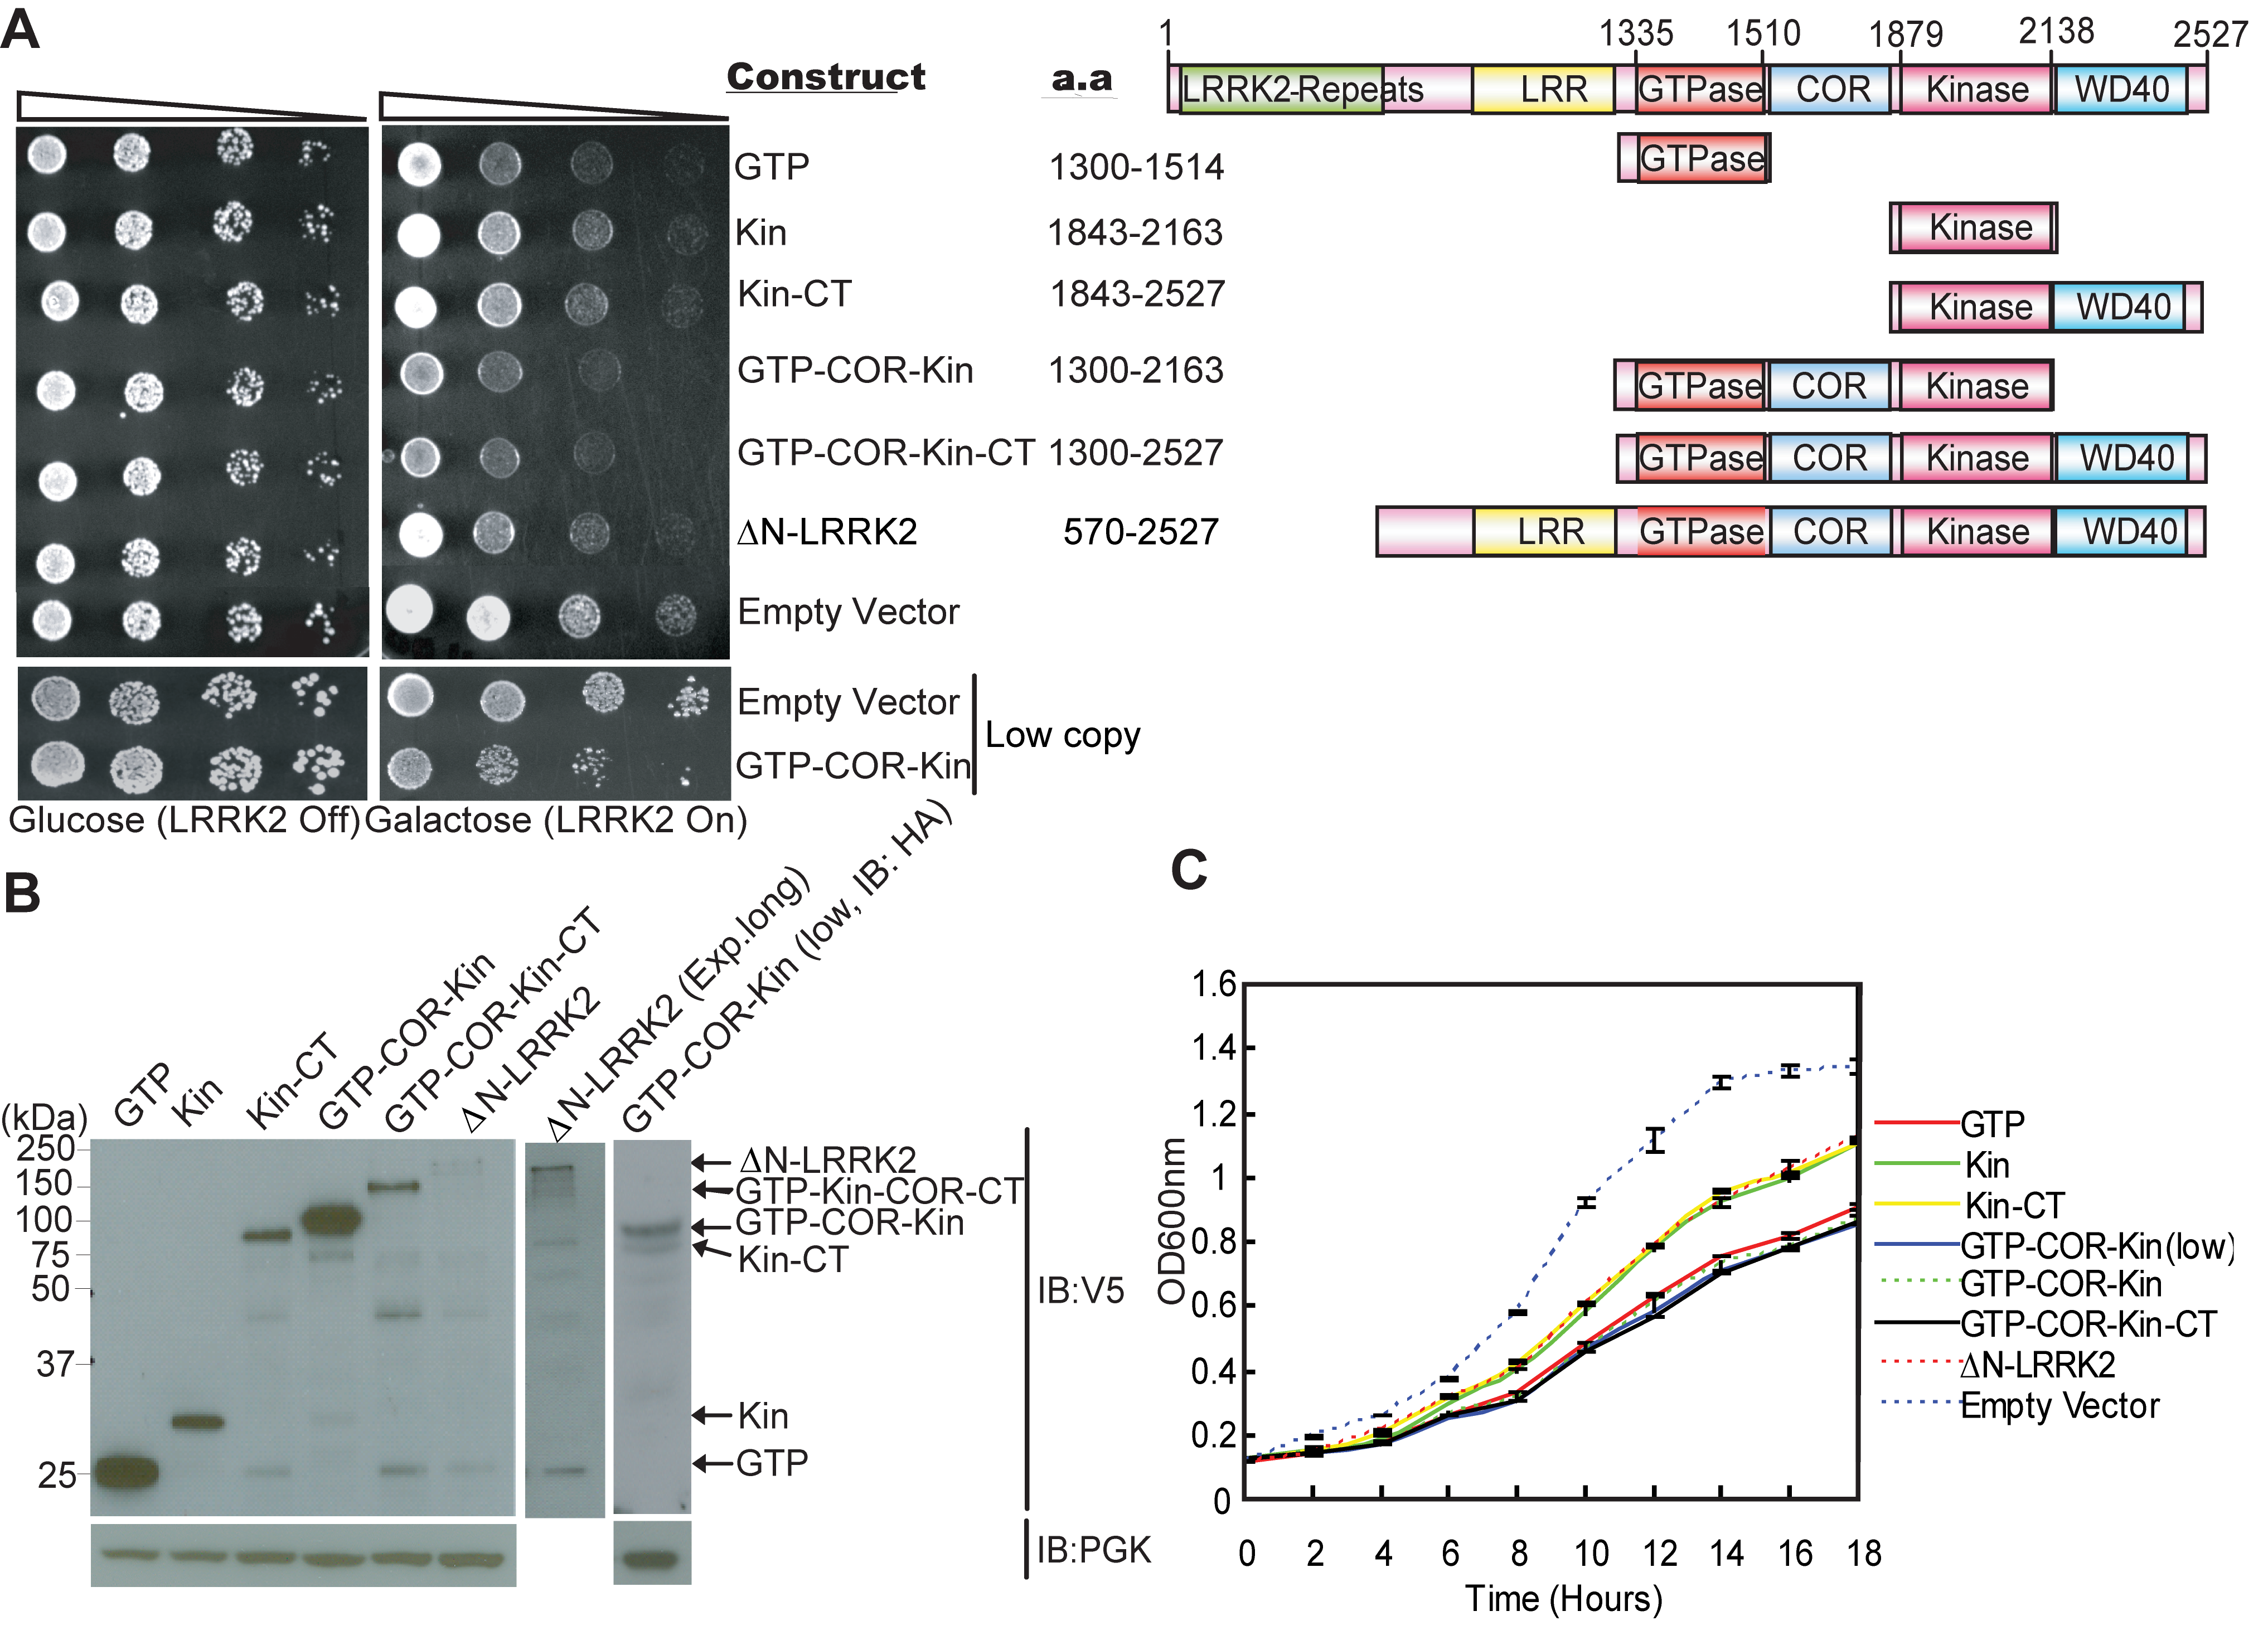 Expression of LRRK2 domain fragments reduces the viability of yeast.